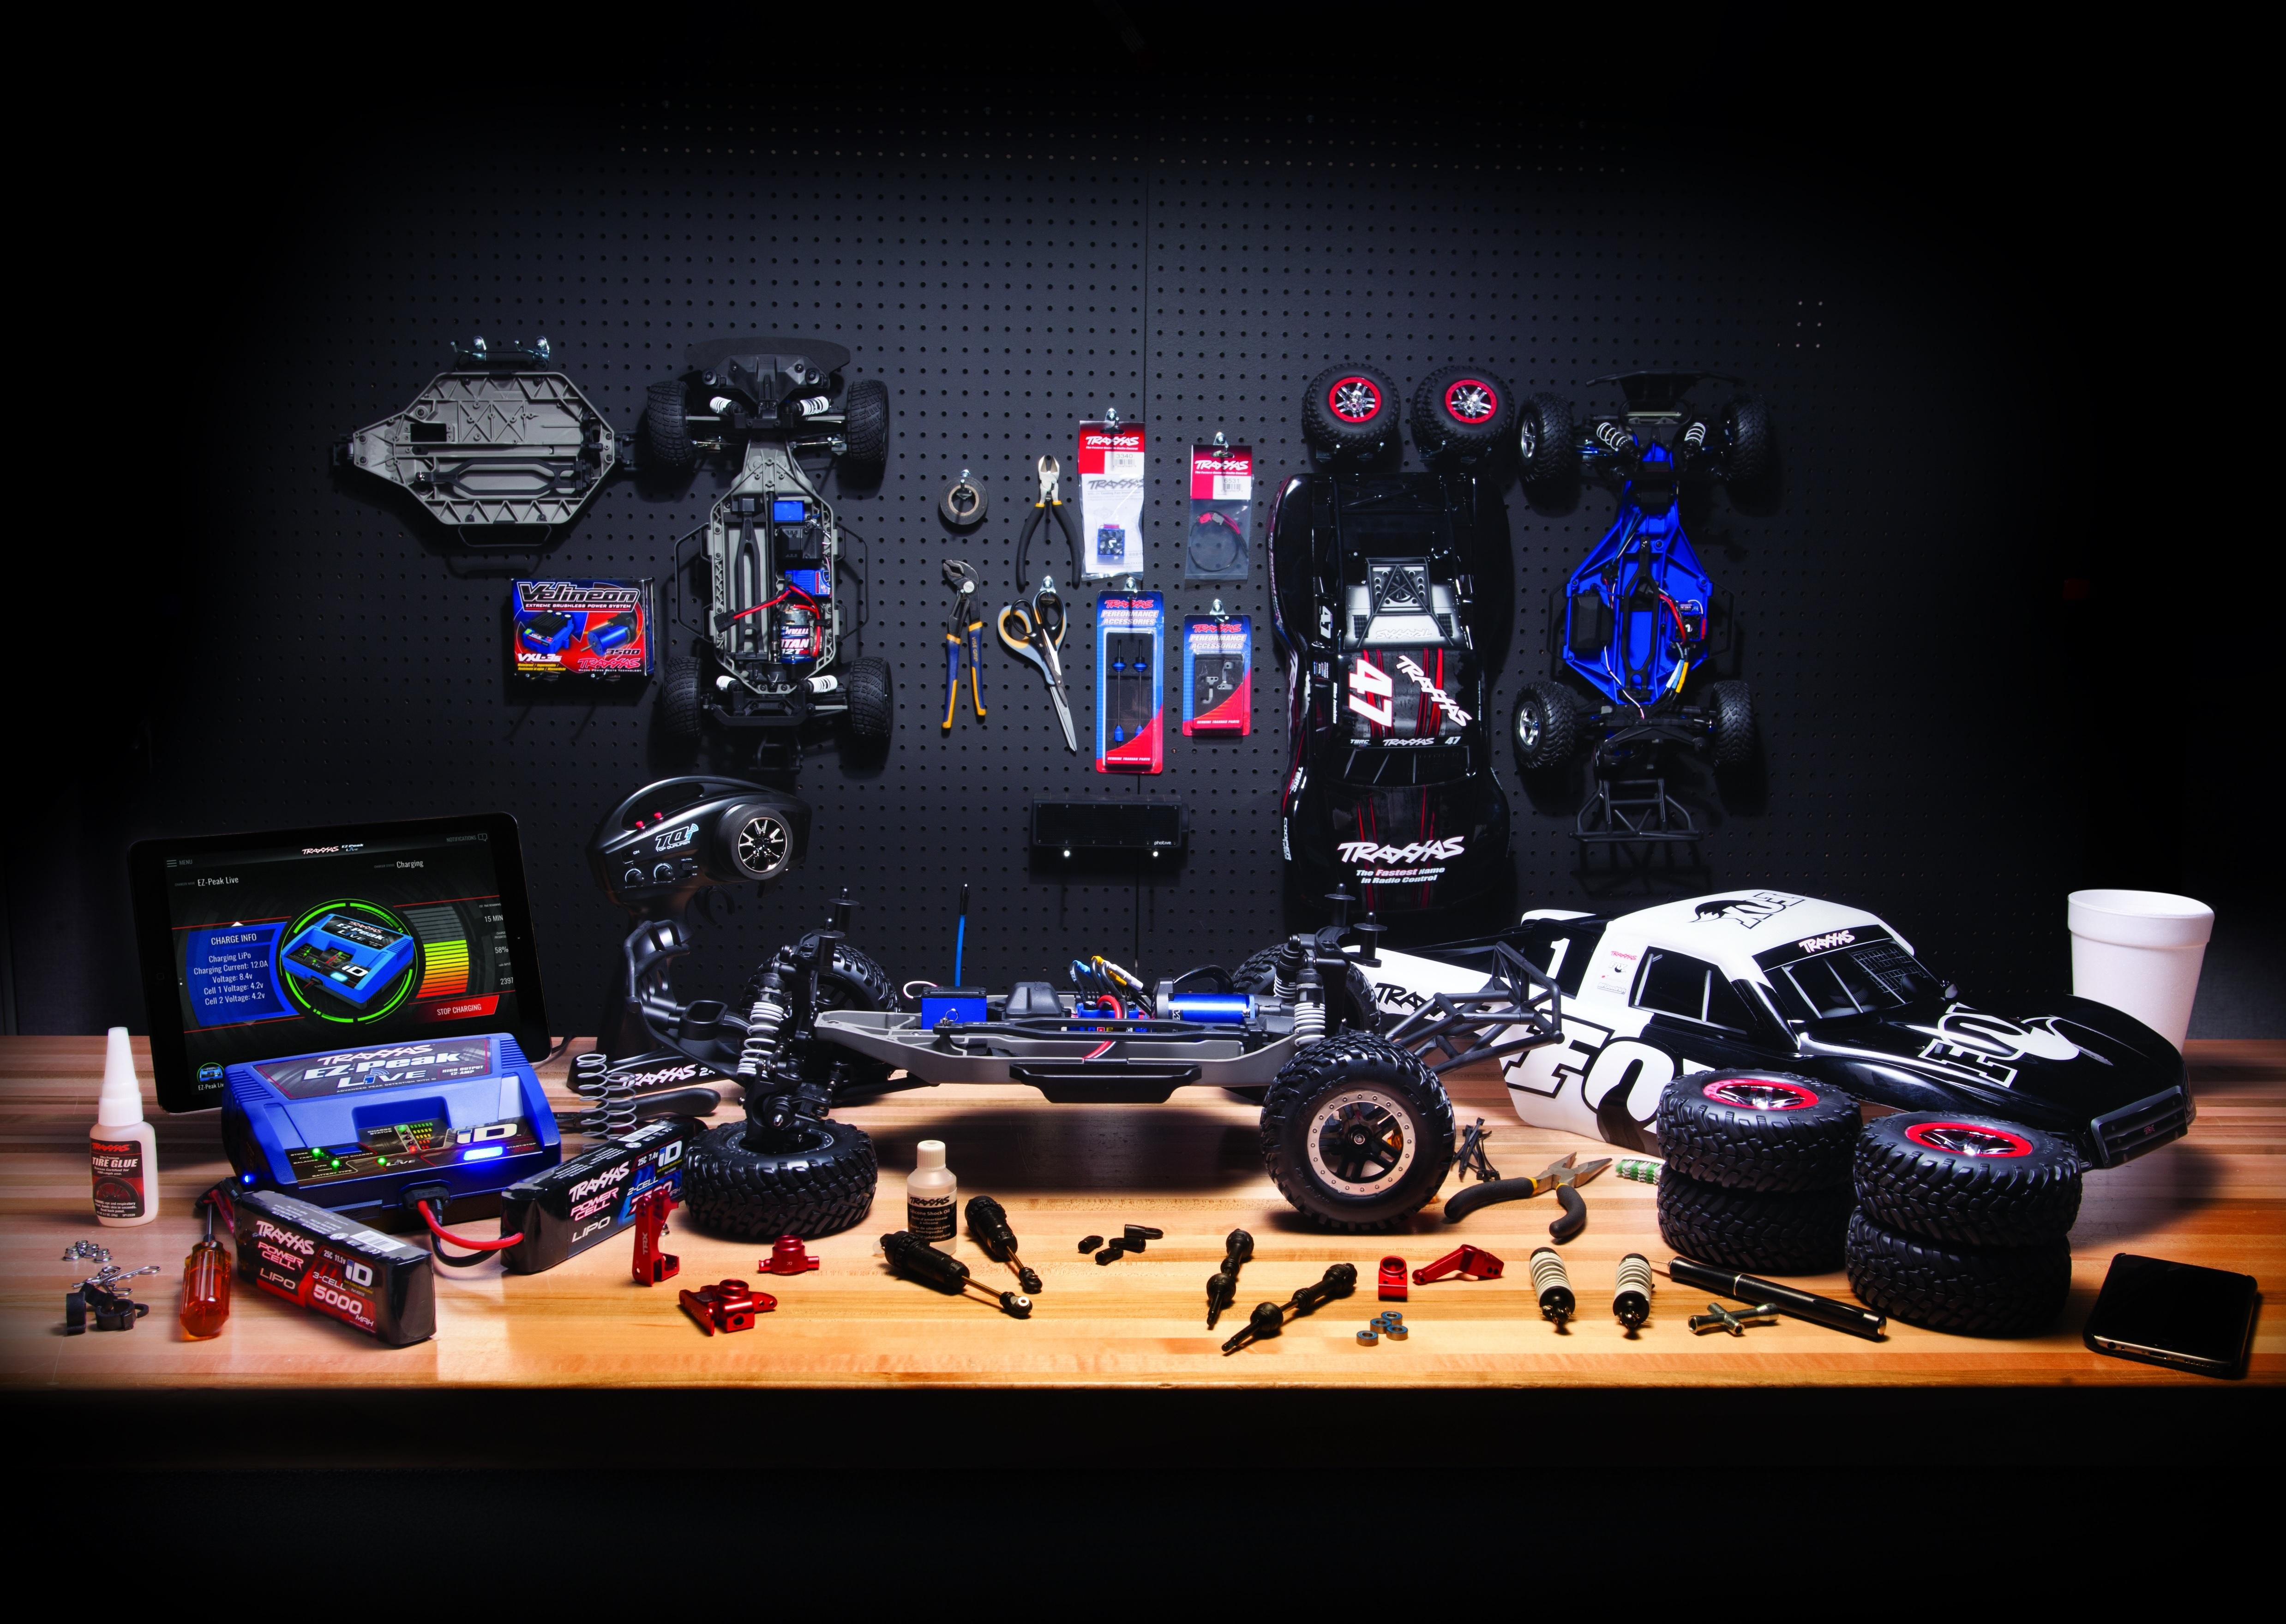 View larger Amazoncom Traxxas 1834 Body Clips